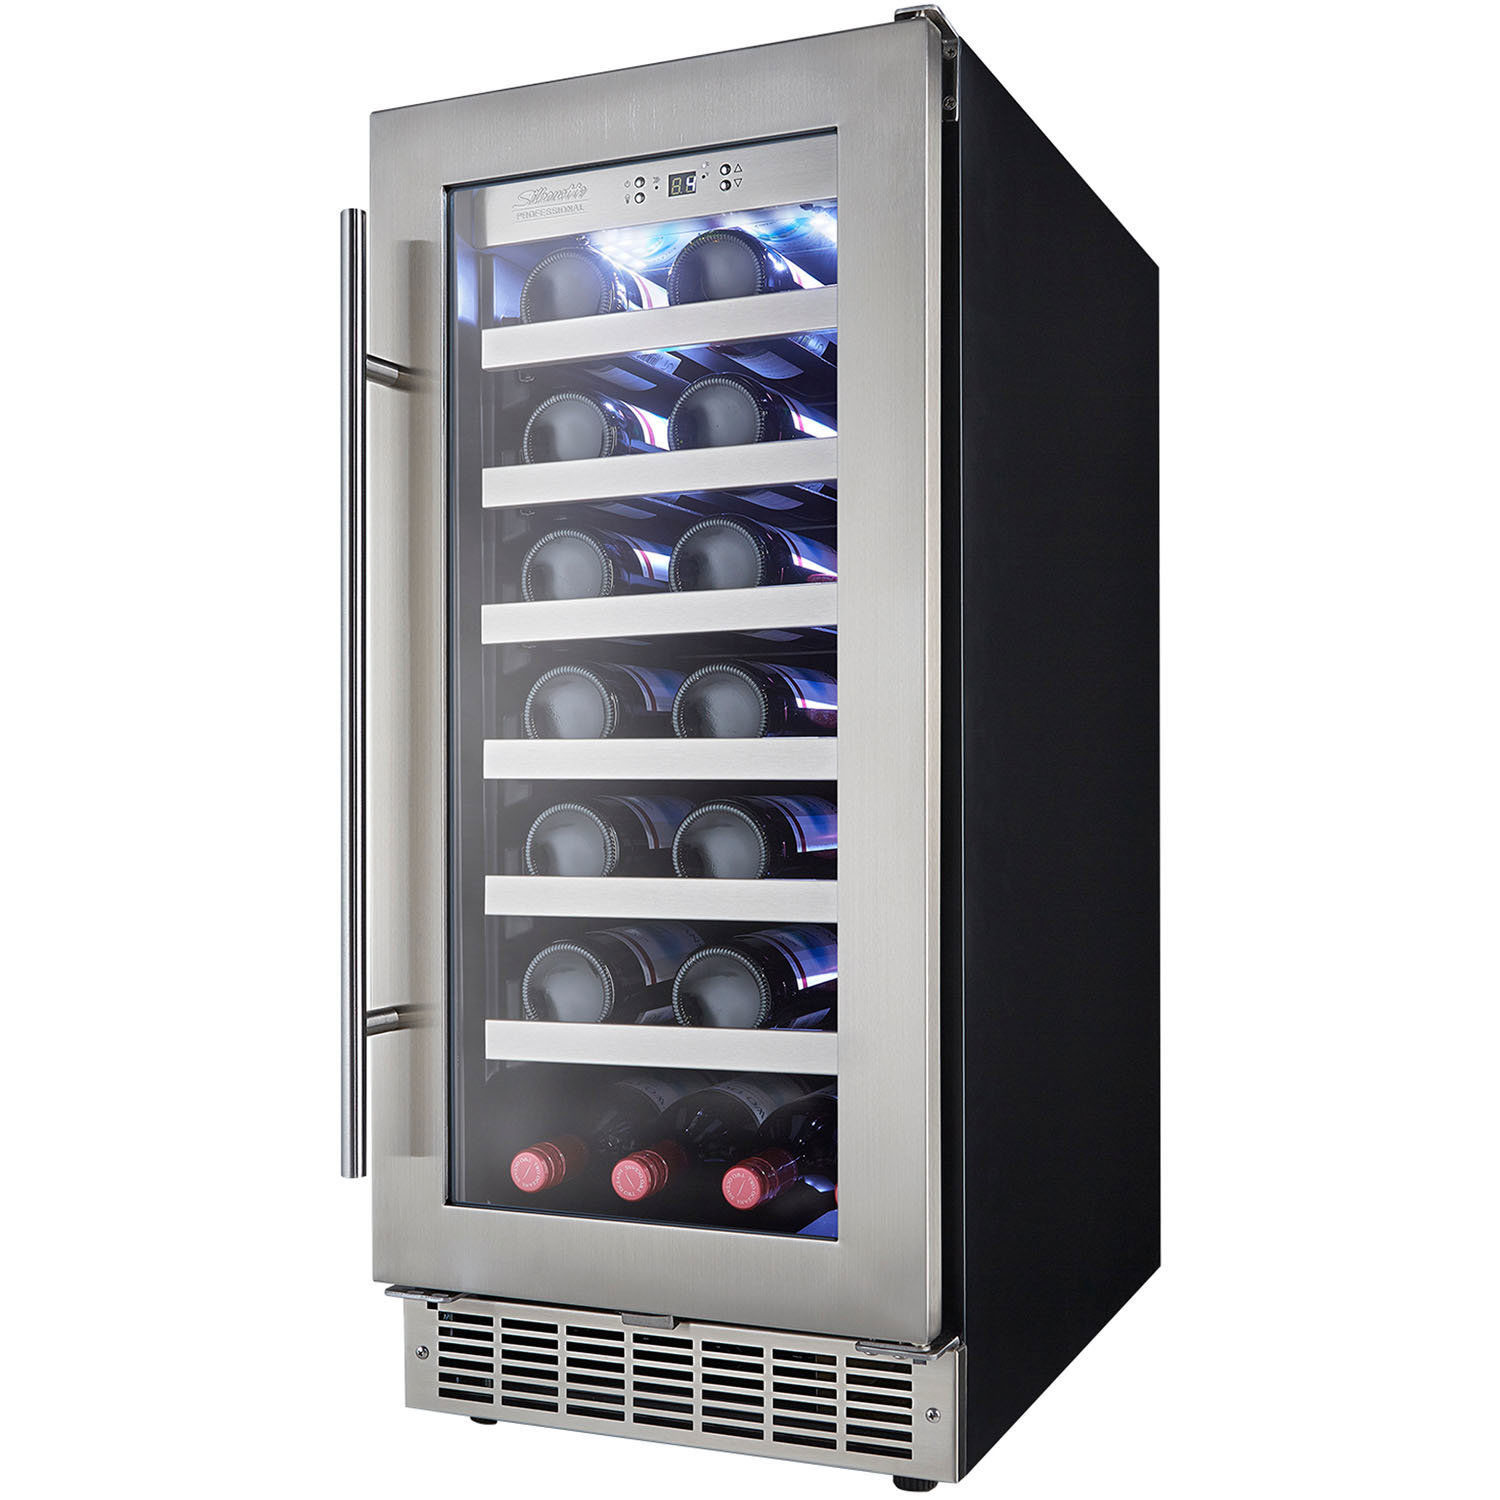 silhouette tuscany 28 bottle builtin wine cooler - Built In Wine Cooler